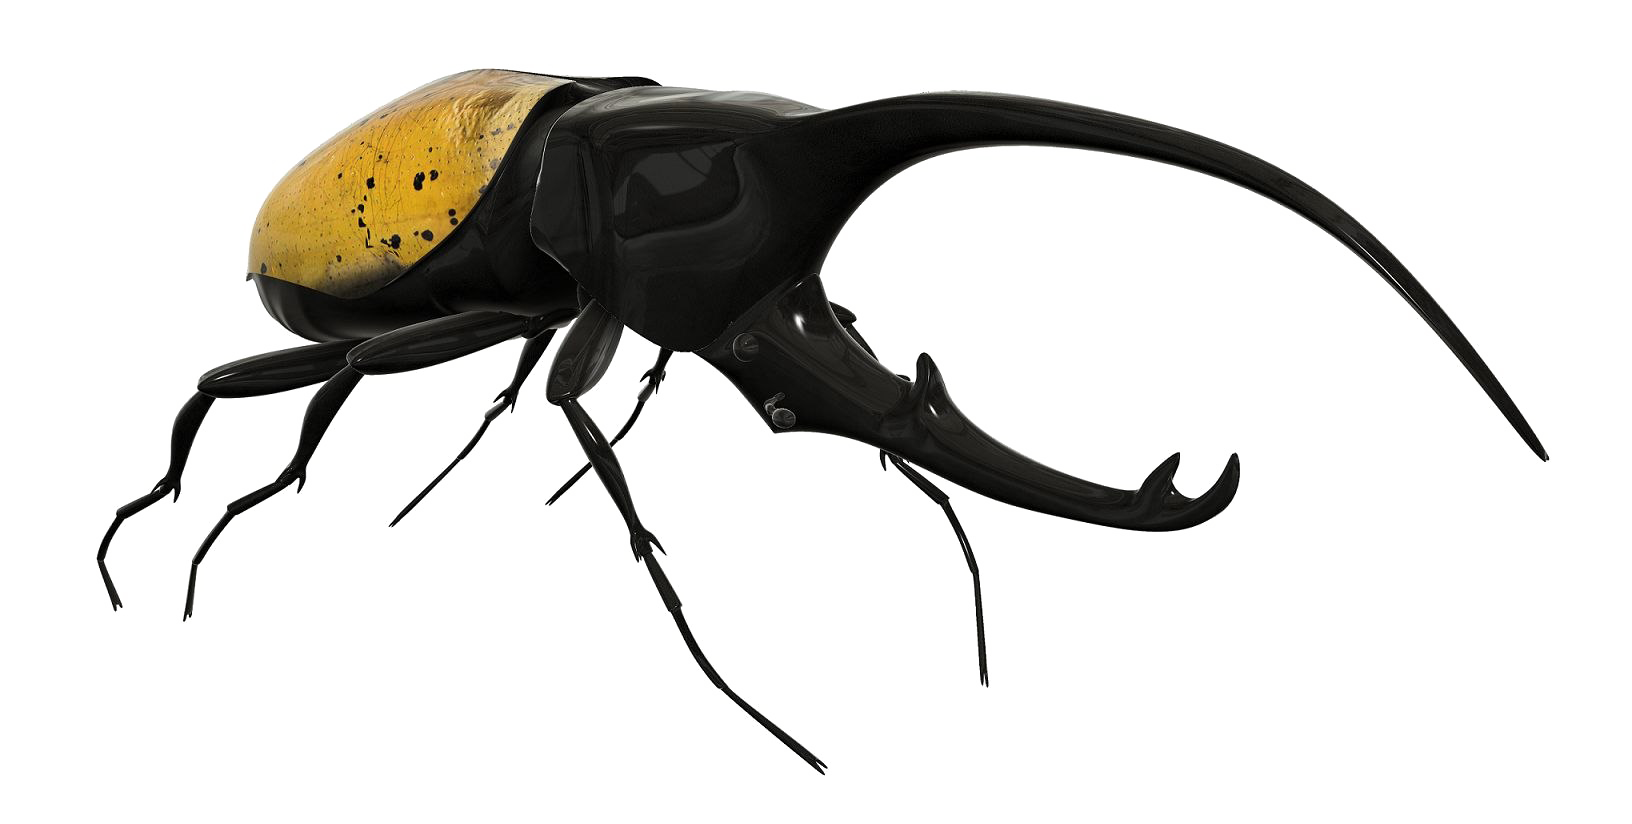 Beetle PNG Image Background.